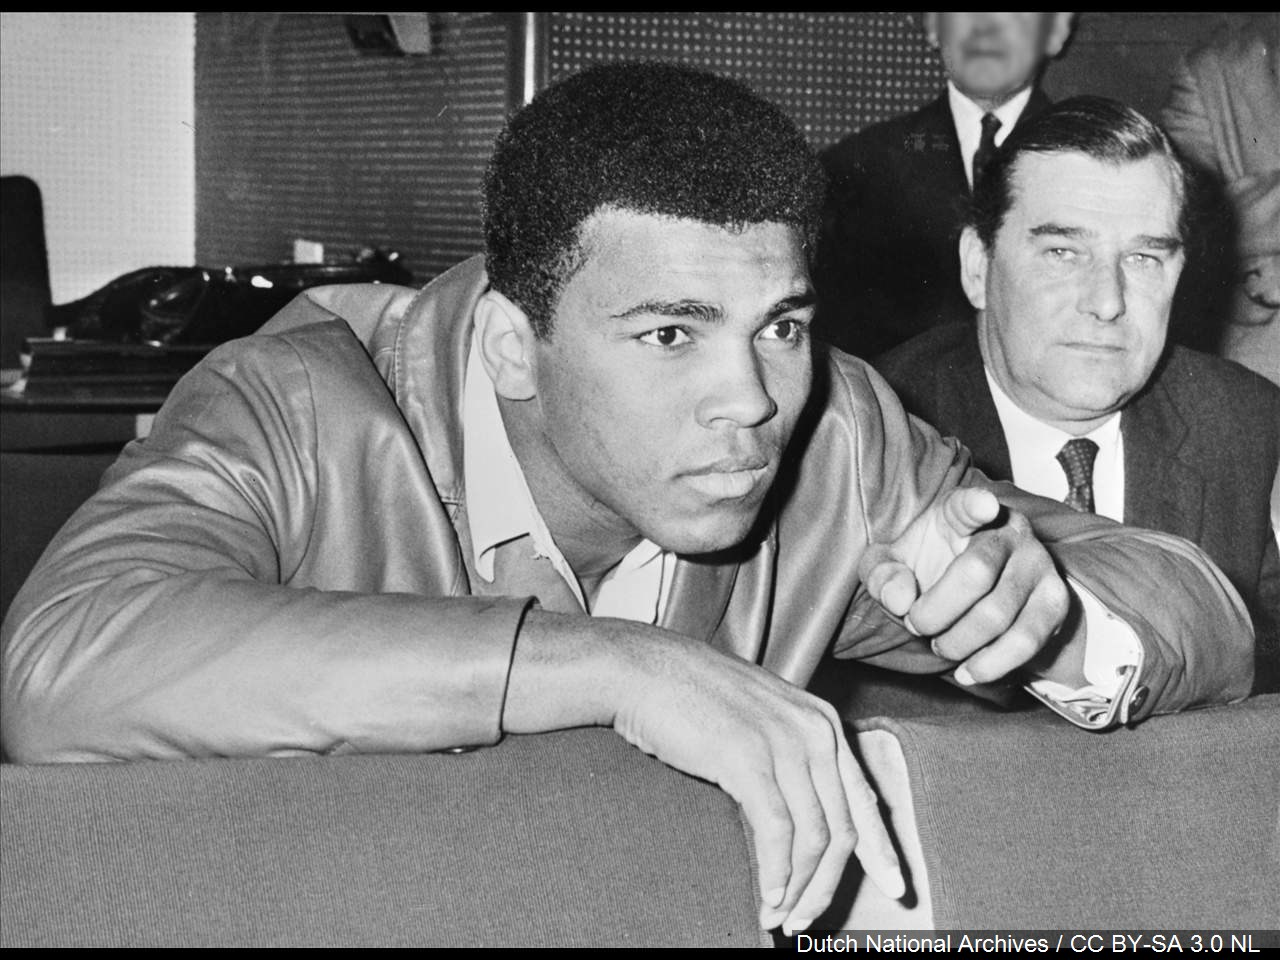 Muhammad Ali was admitted to the hospital with a respiratory issue according to his rep who confirmed Thursday, June 2, 2016. (Muhammad Ali Birthday 1/17 1942, Photo Date: 1966 - Dutch National Archives / CC BY-SA 3.0 NL )